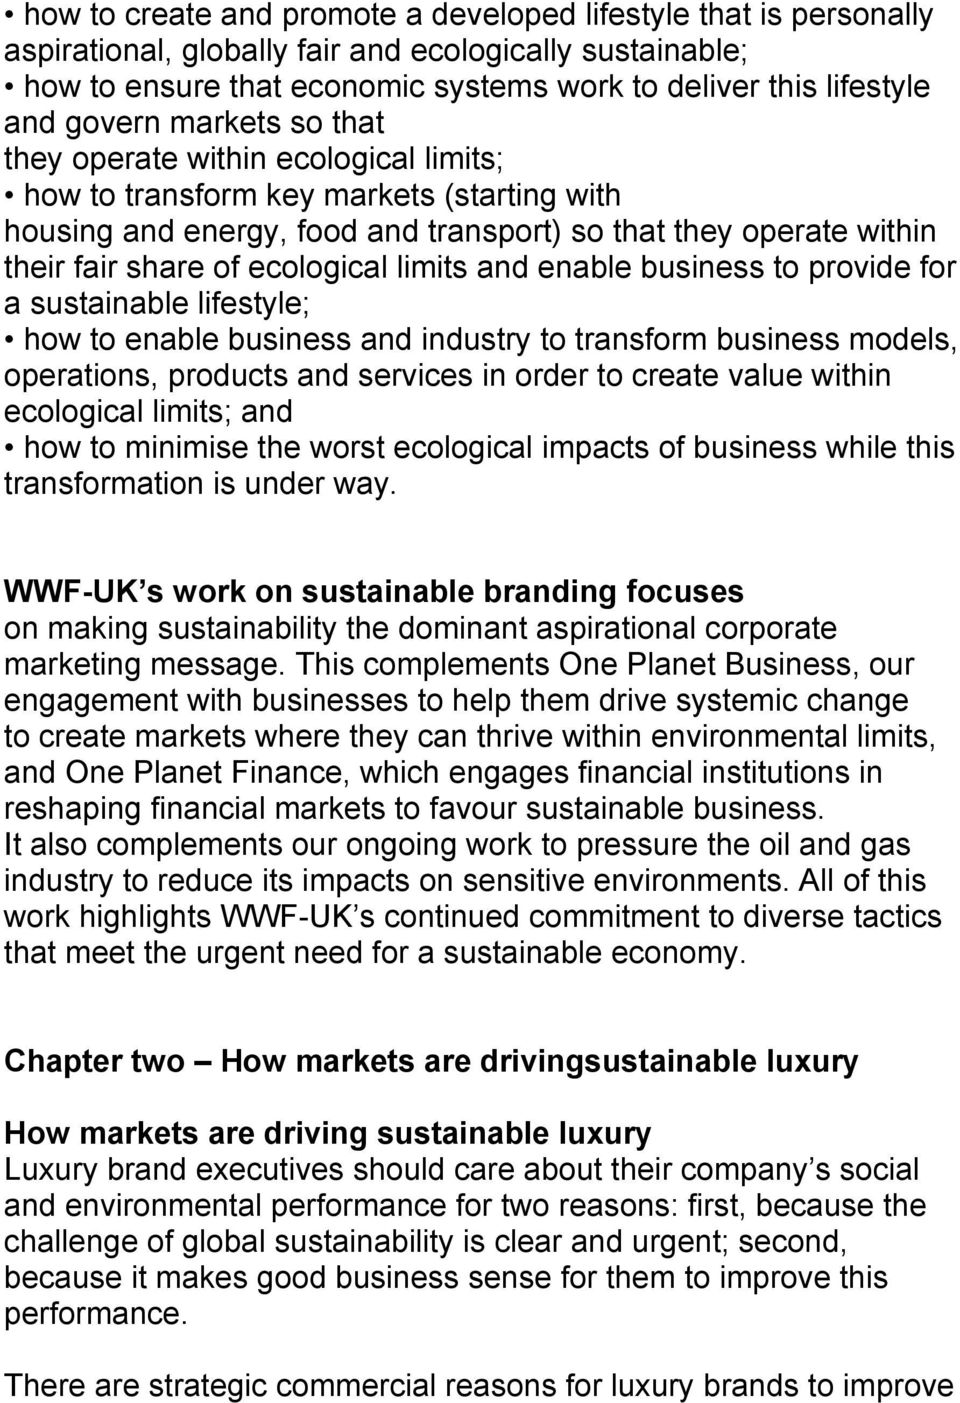 ecological limits and enable business to provide for a sustainable lifestyle; how to enable business and industry to transform business models, operations, products and services in order to create